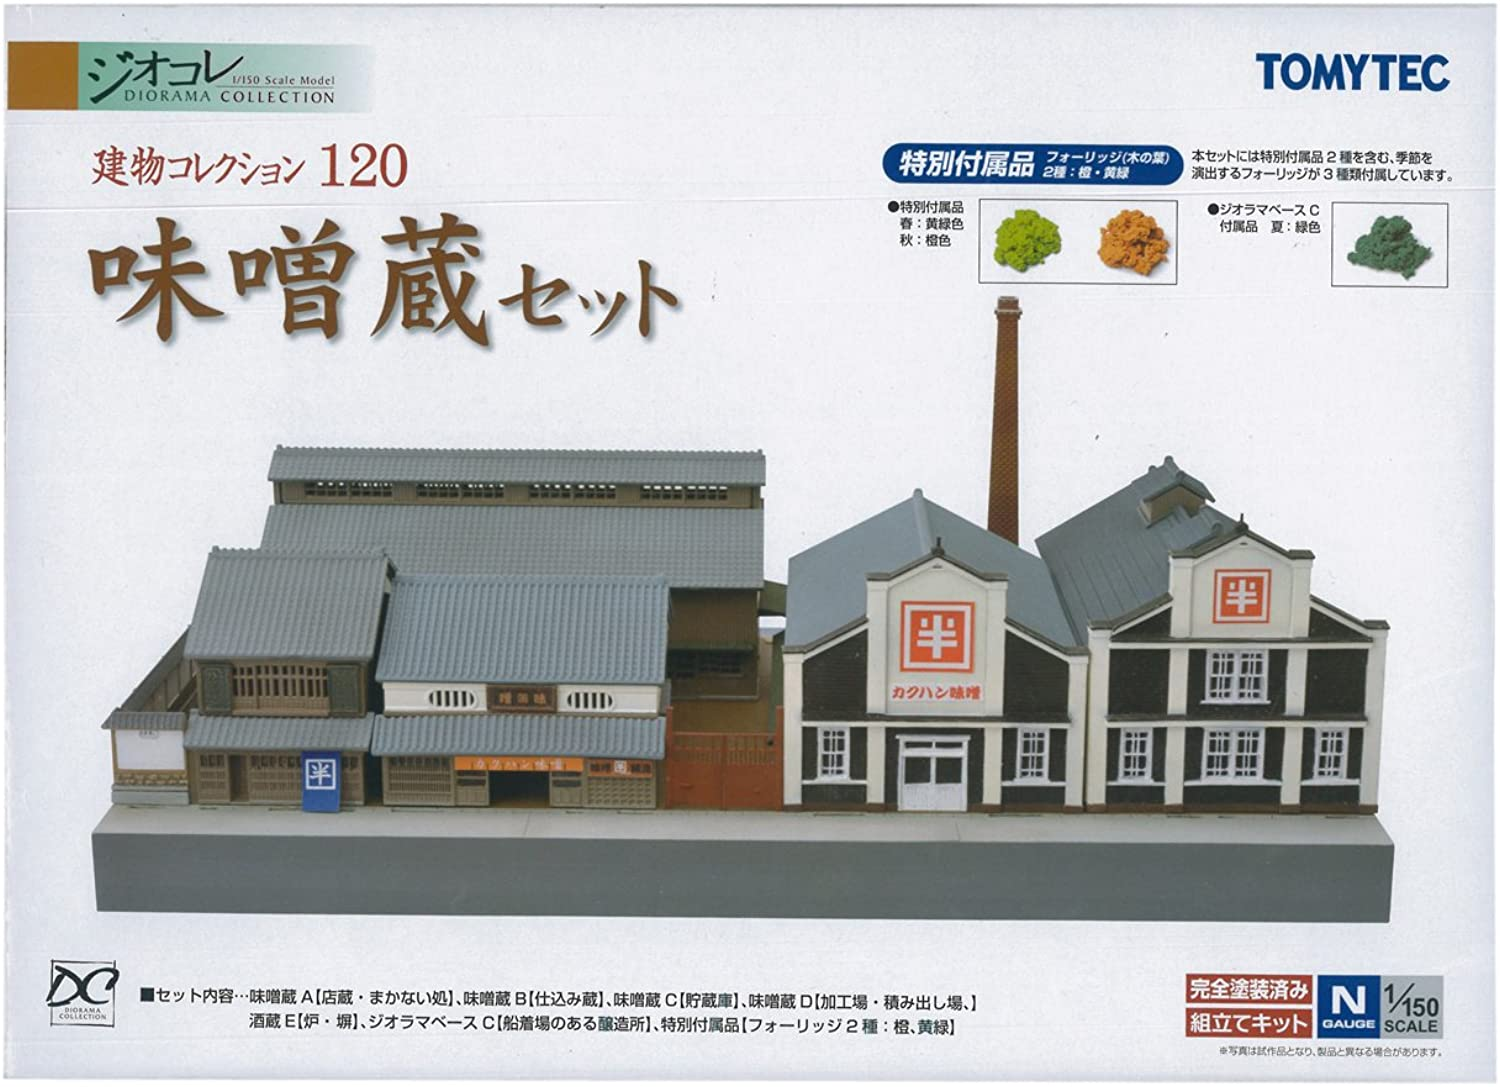 The Building Collection 120 - Storehouse Set for Miso